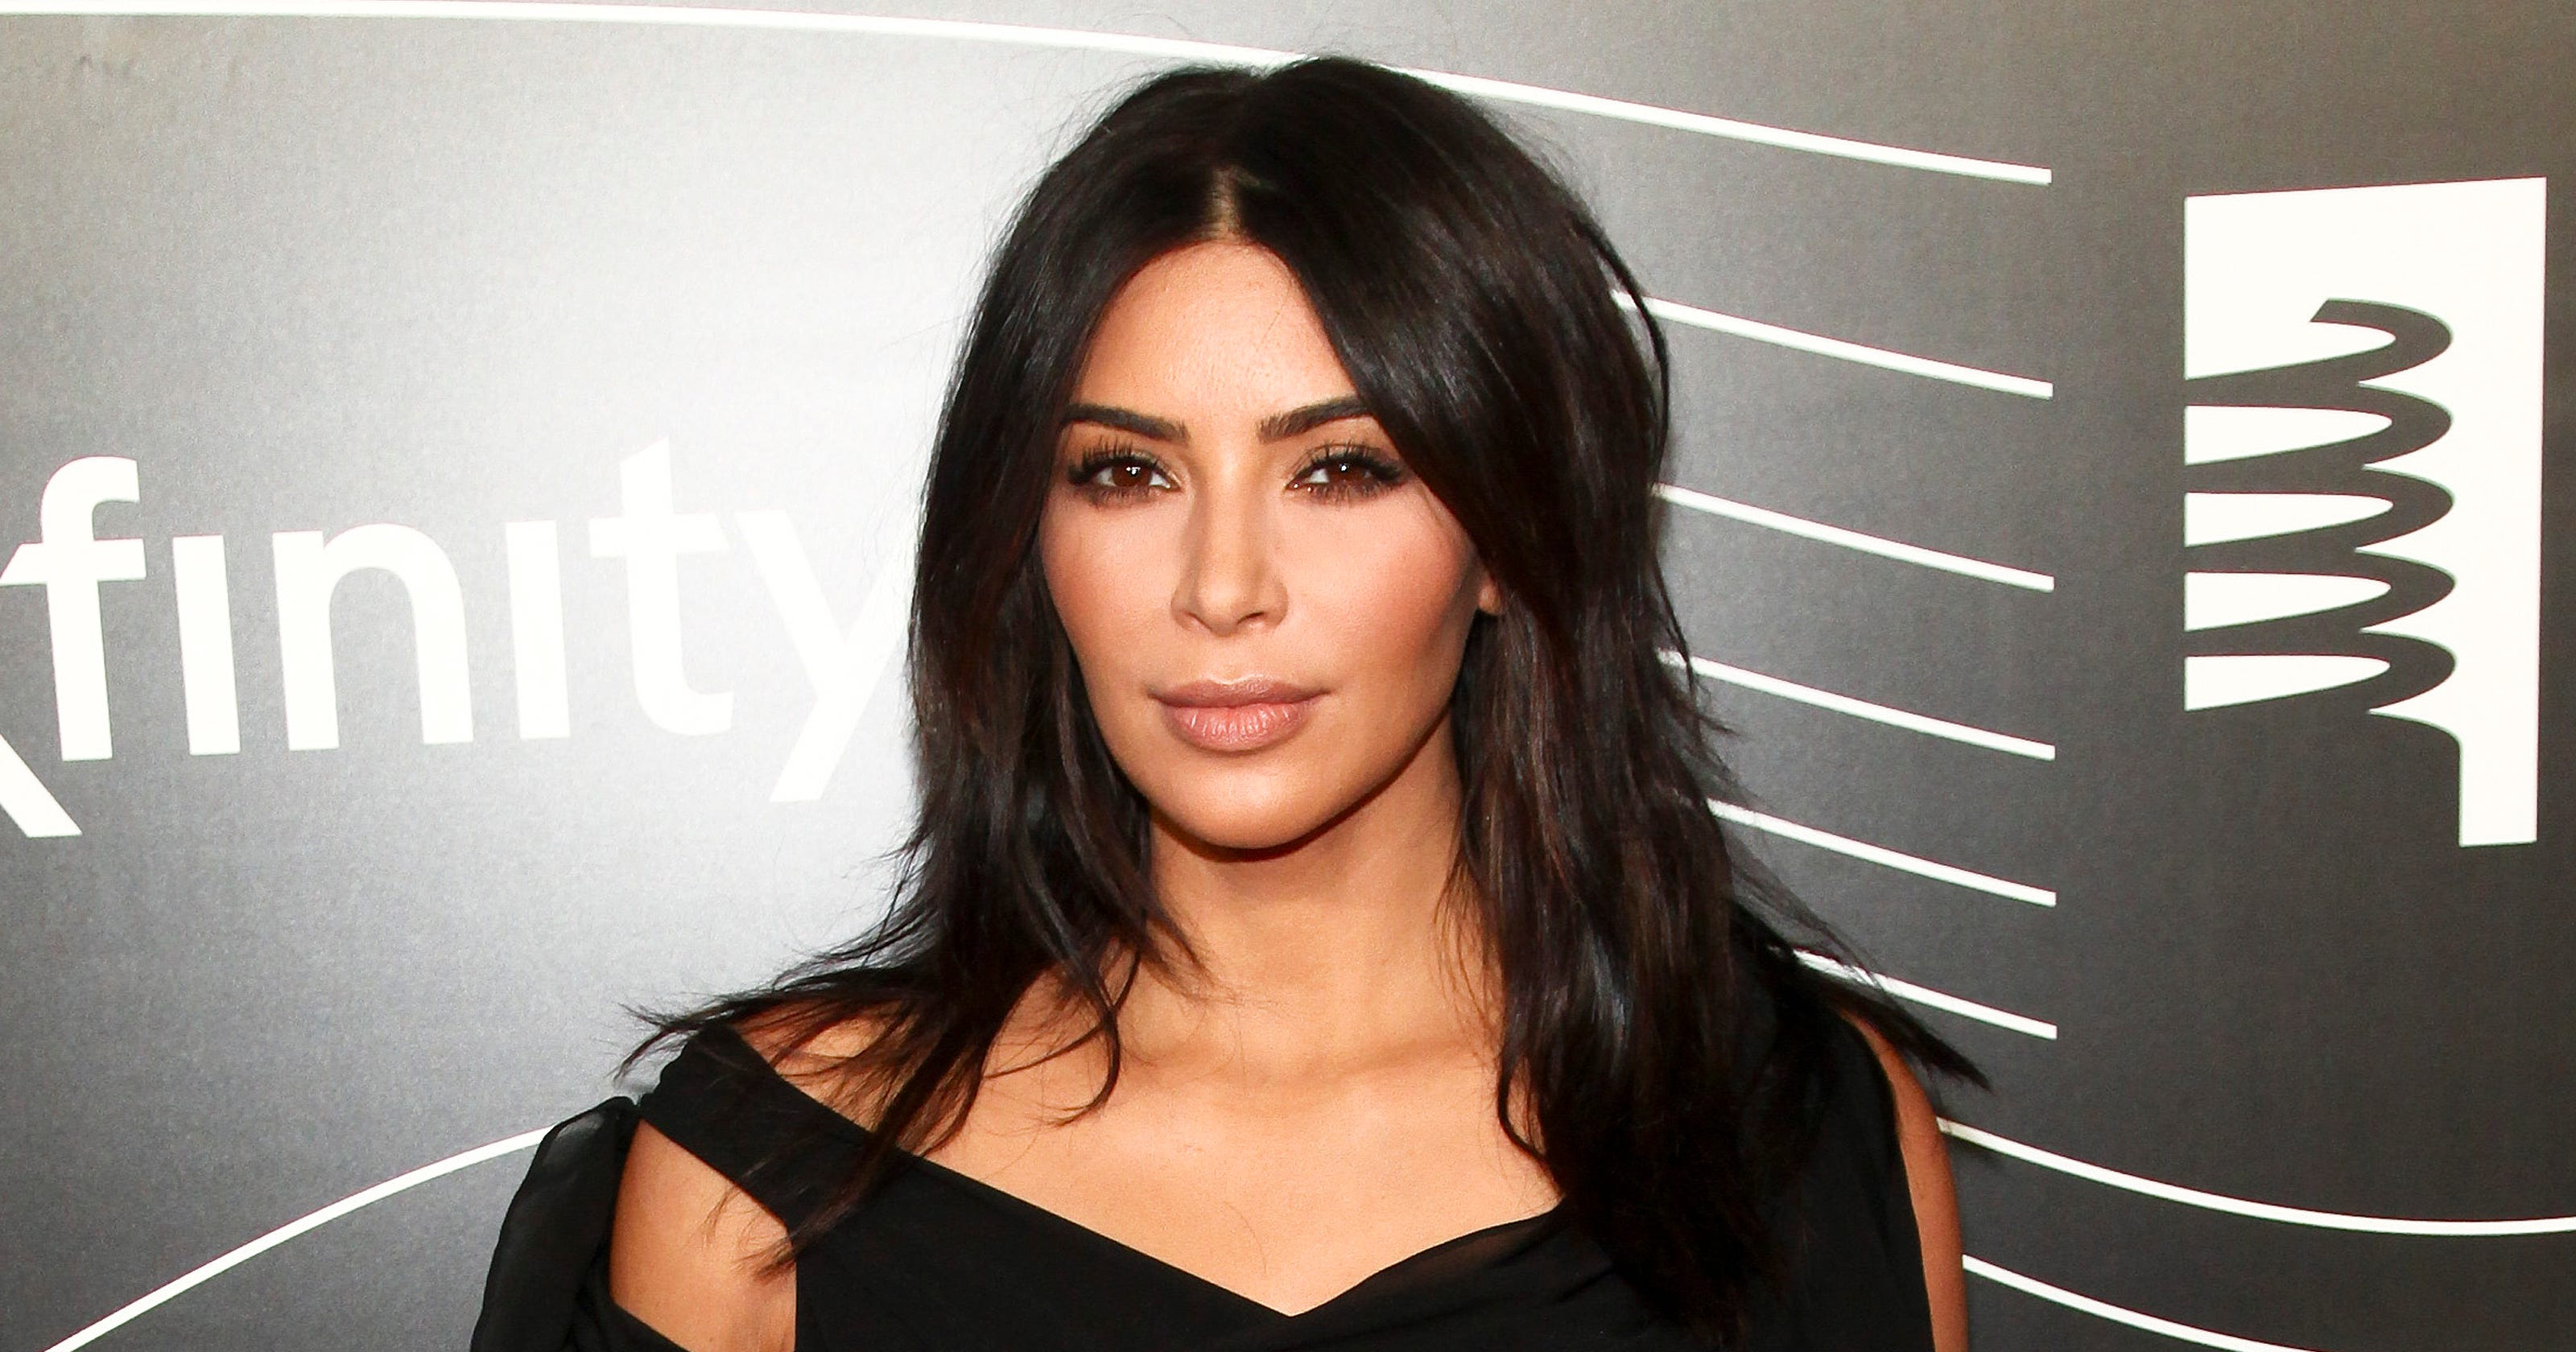 f1bf938ca45d Chilling Kim Kardashian robbery video surfaces